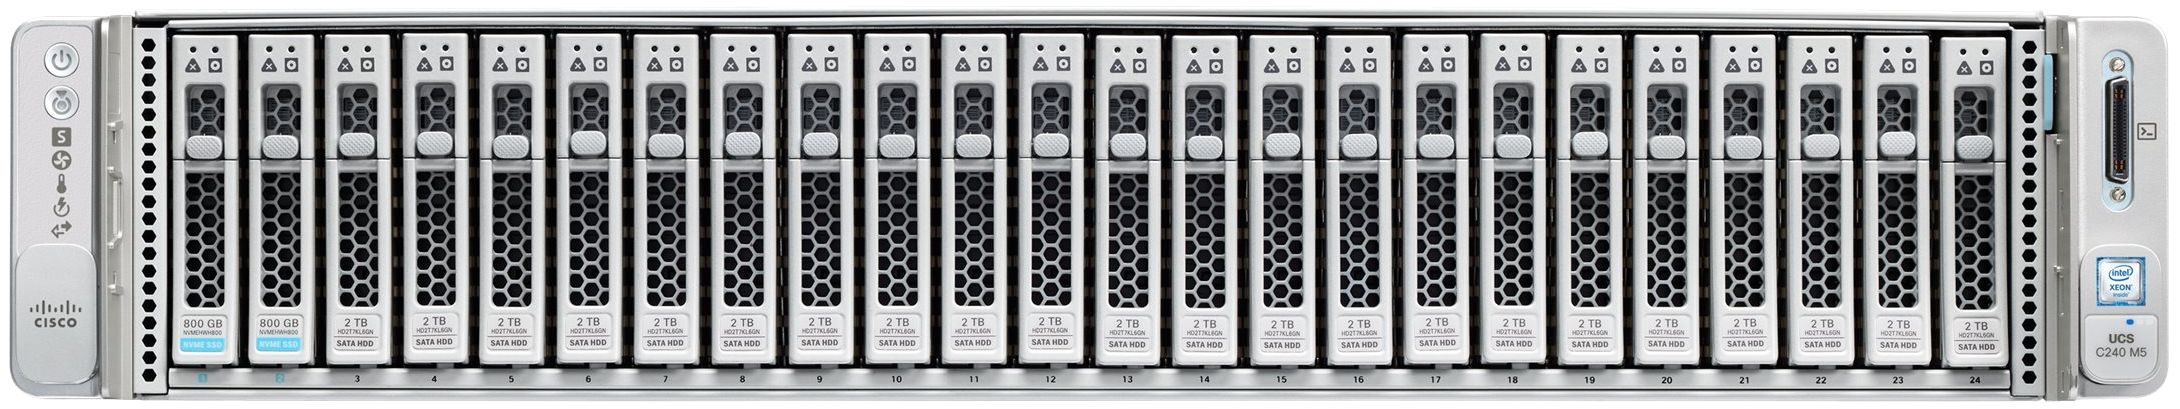 Cisco UCS C240 M5 24SFF